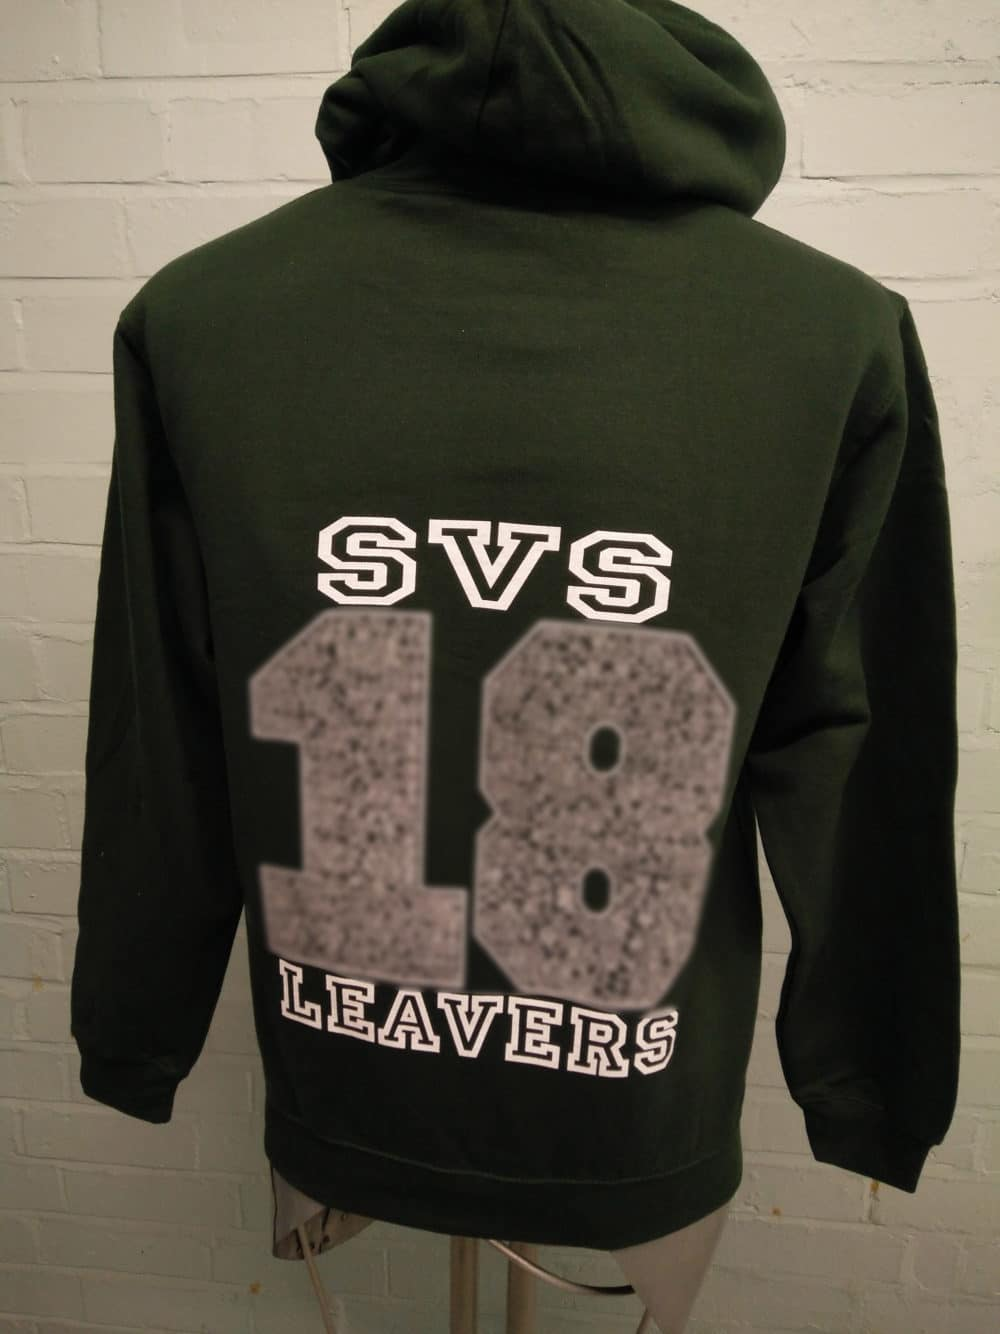 SVS Leavers Hoodies in Black for 2018